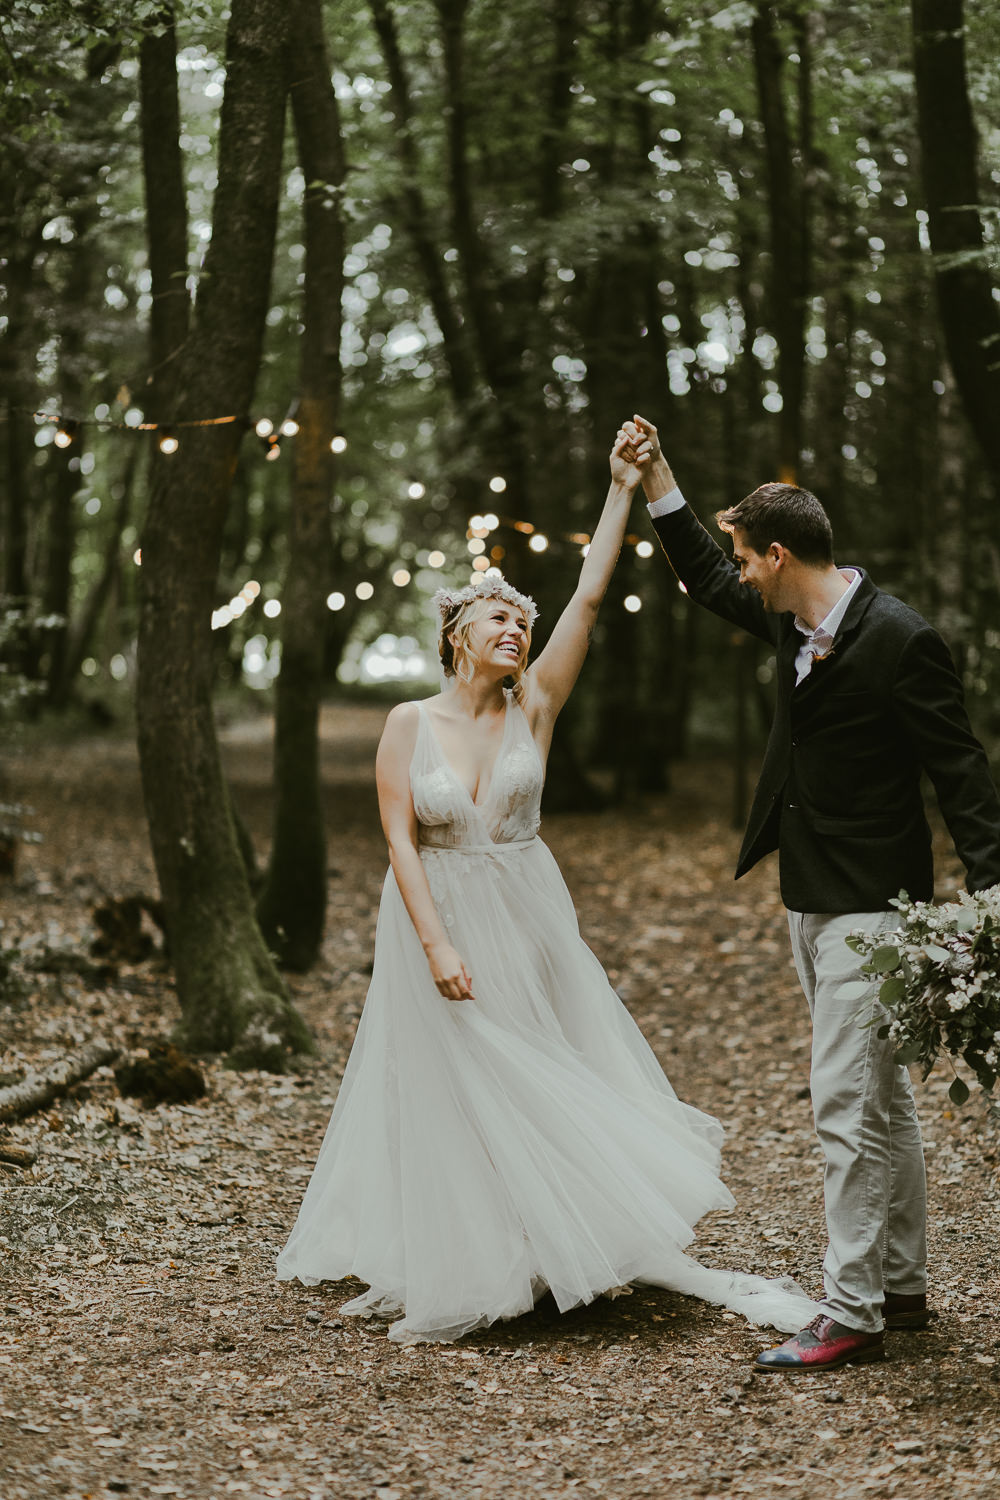 Bride Bridal Flower Crown Dress Gown Train Tulle Dreamy Woodland Wedding Ideas Jasmine Andrews Photography